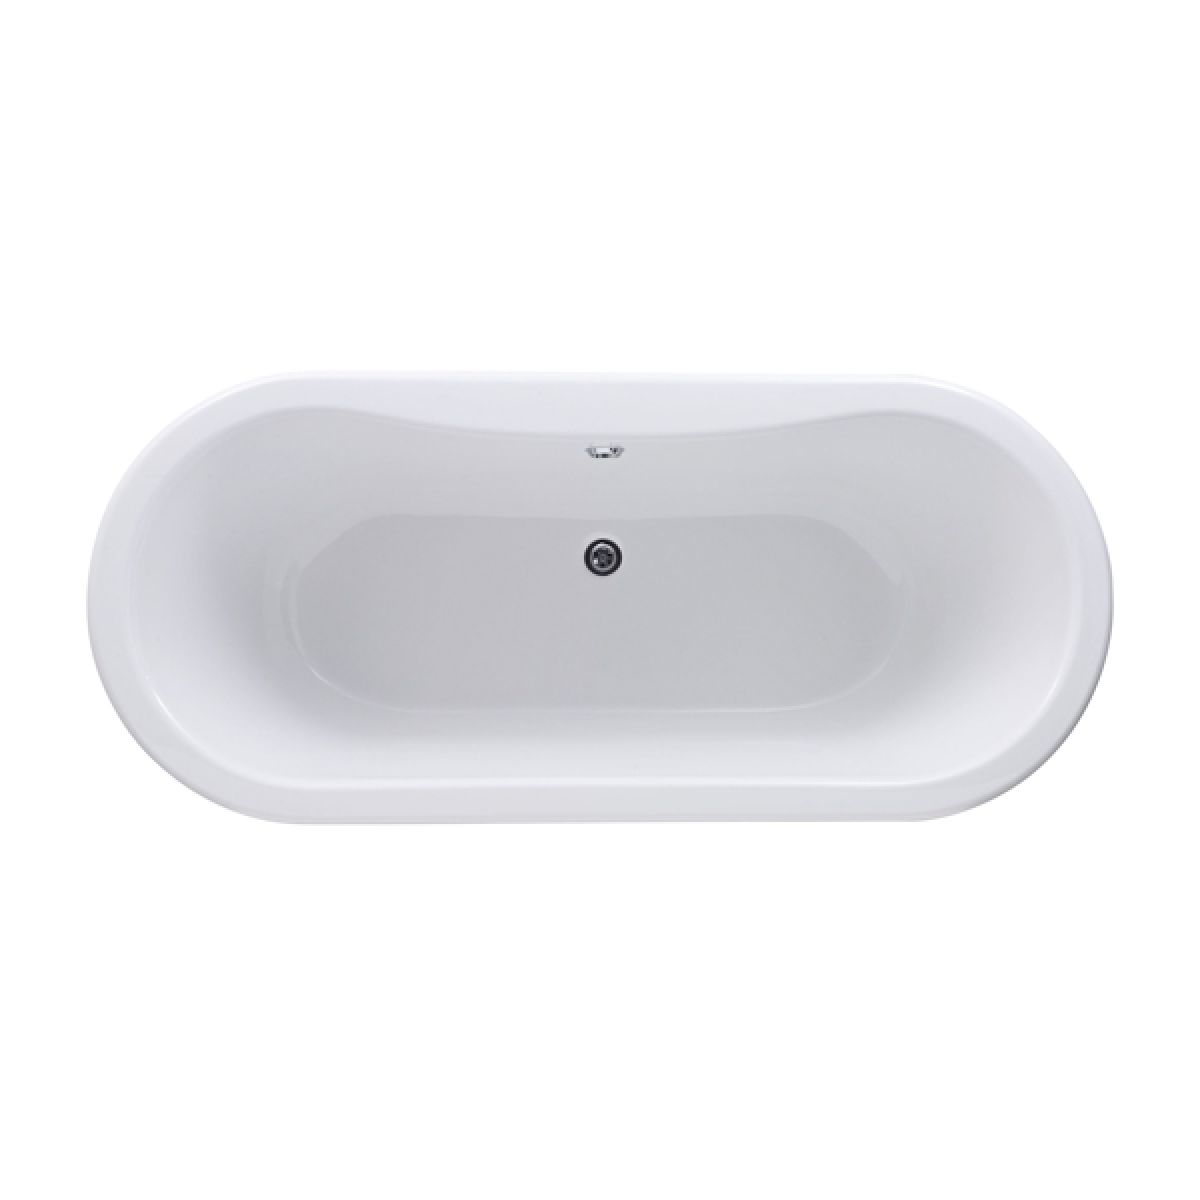 Hudson Reed Kingsbury Double Ended Freestanding Bath - Top View